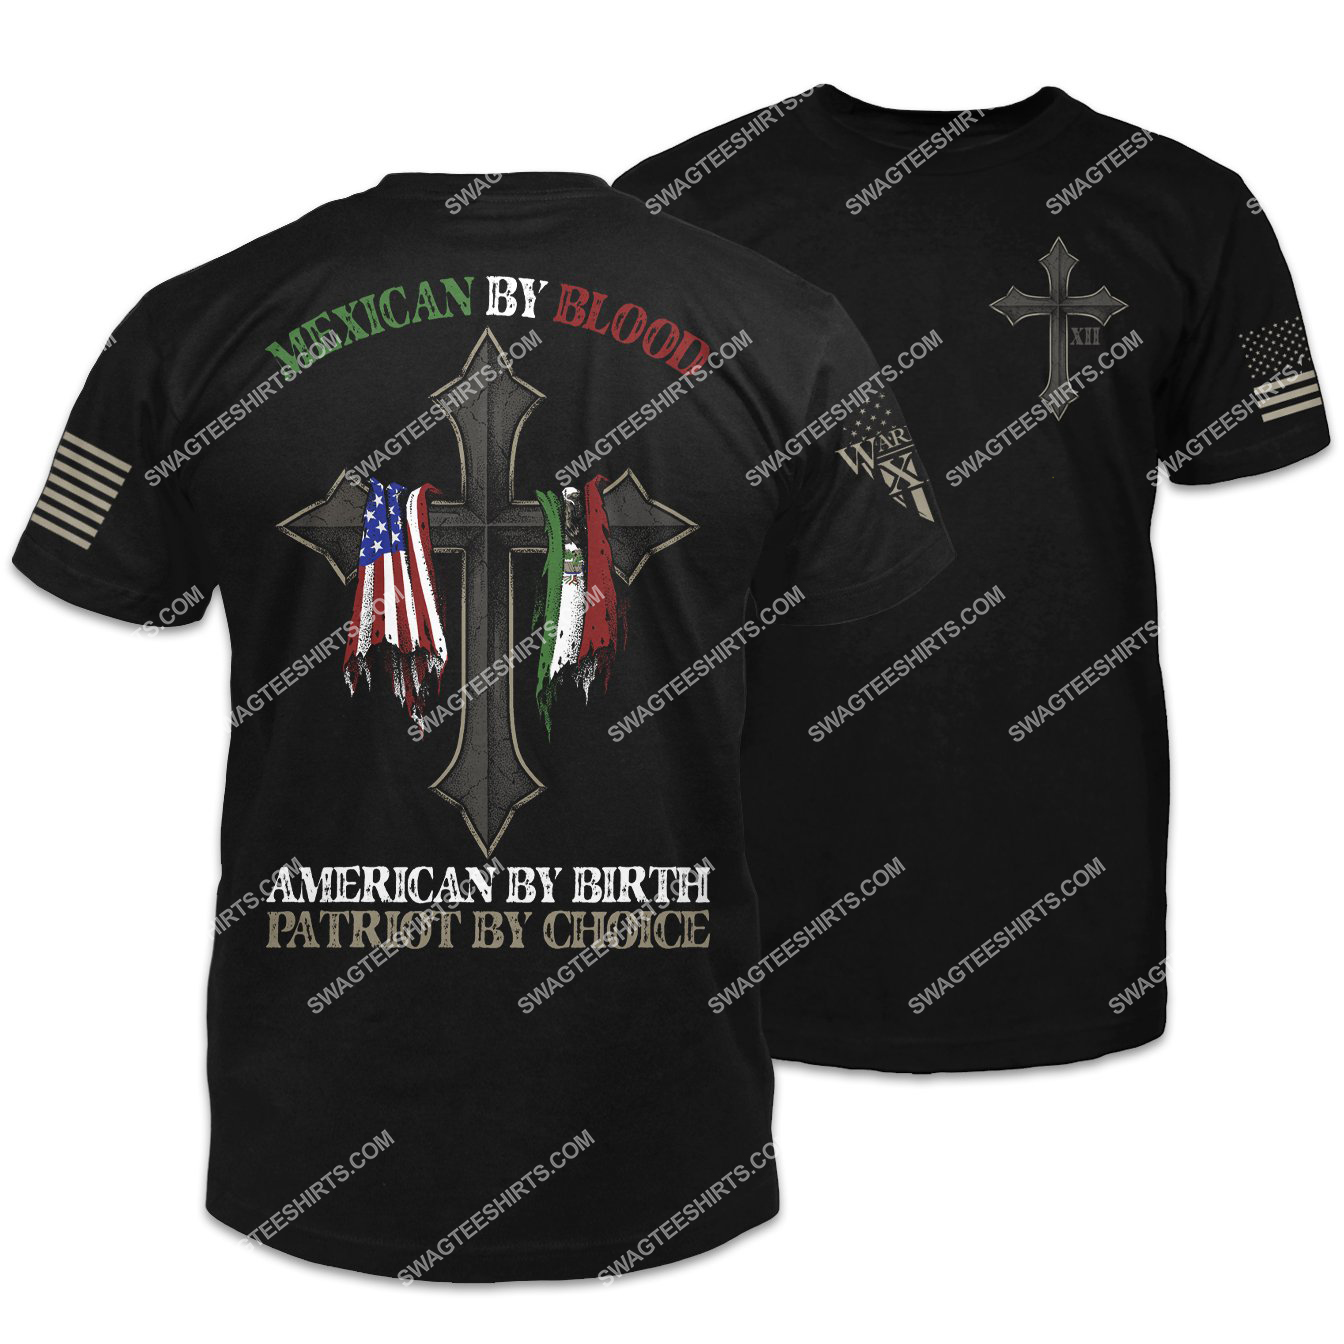 mexican by blood american by birth patriot by choice shirt 1 - Copy